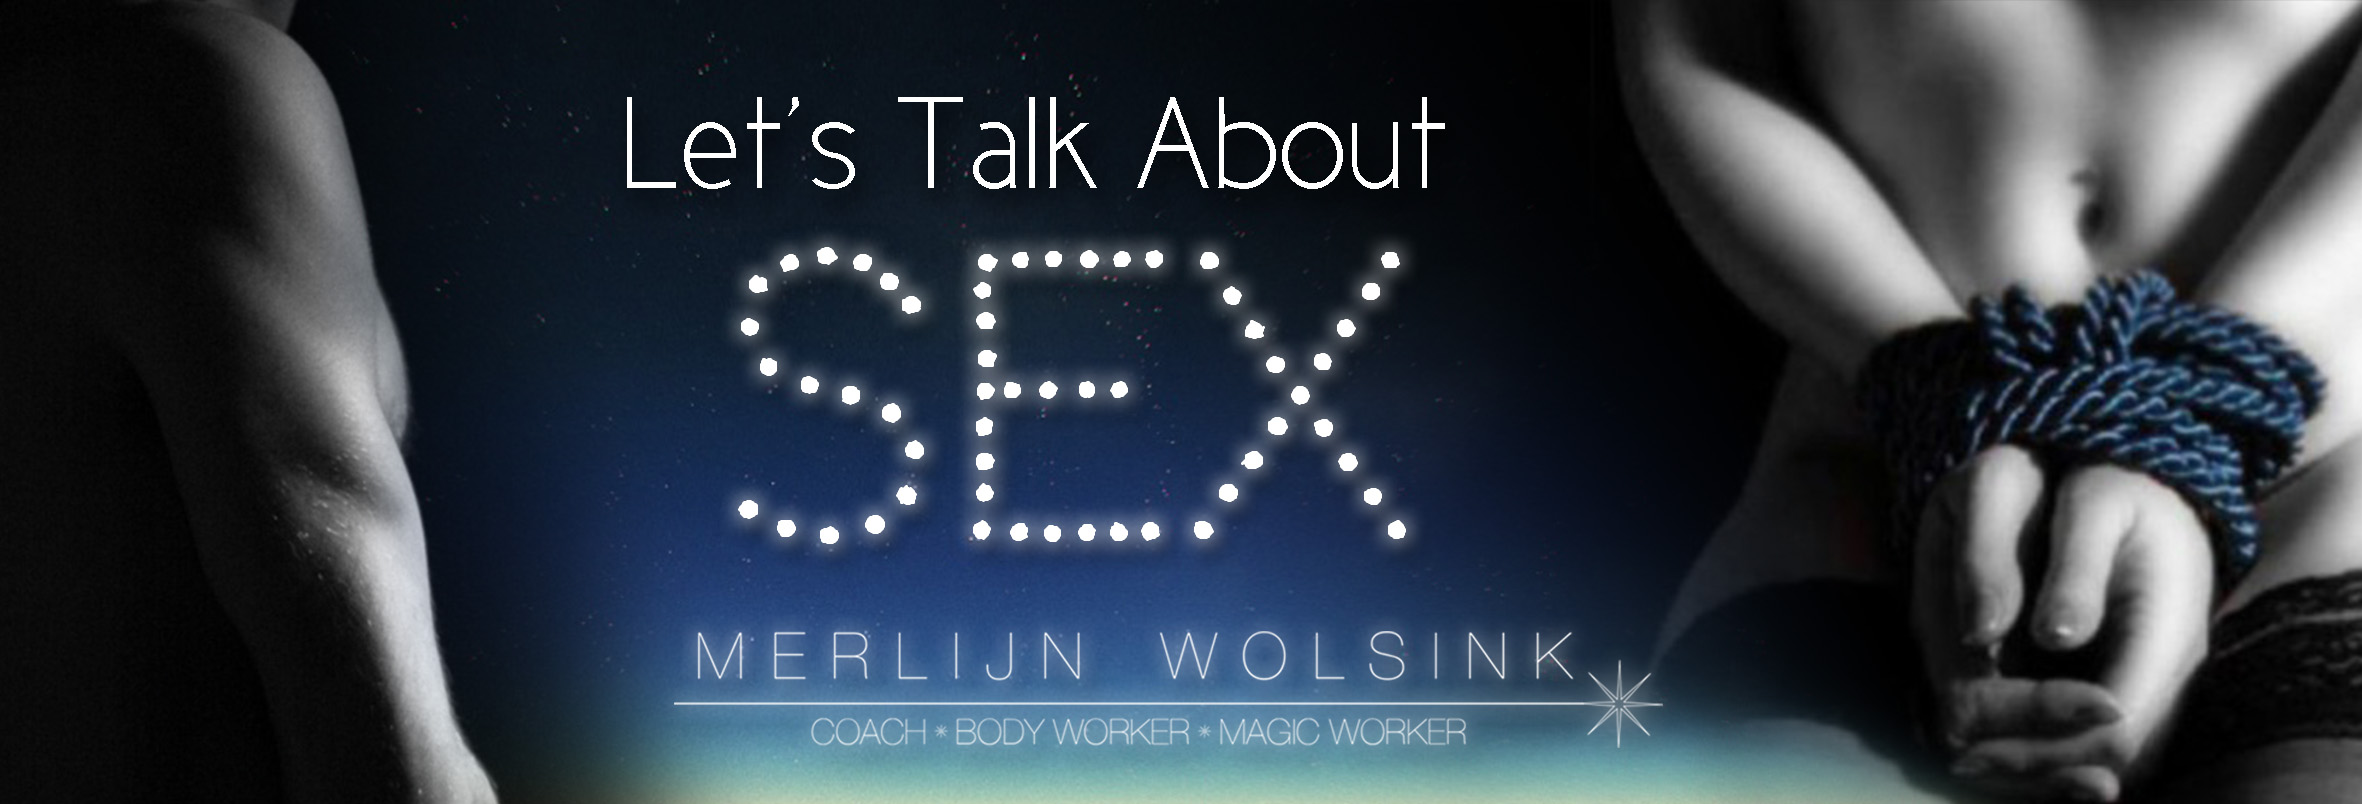 Merlijn Wolsink - Let's Talk About Sex